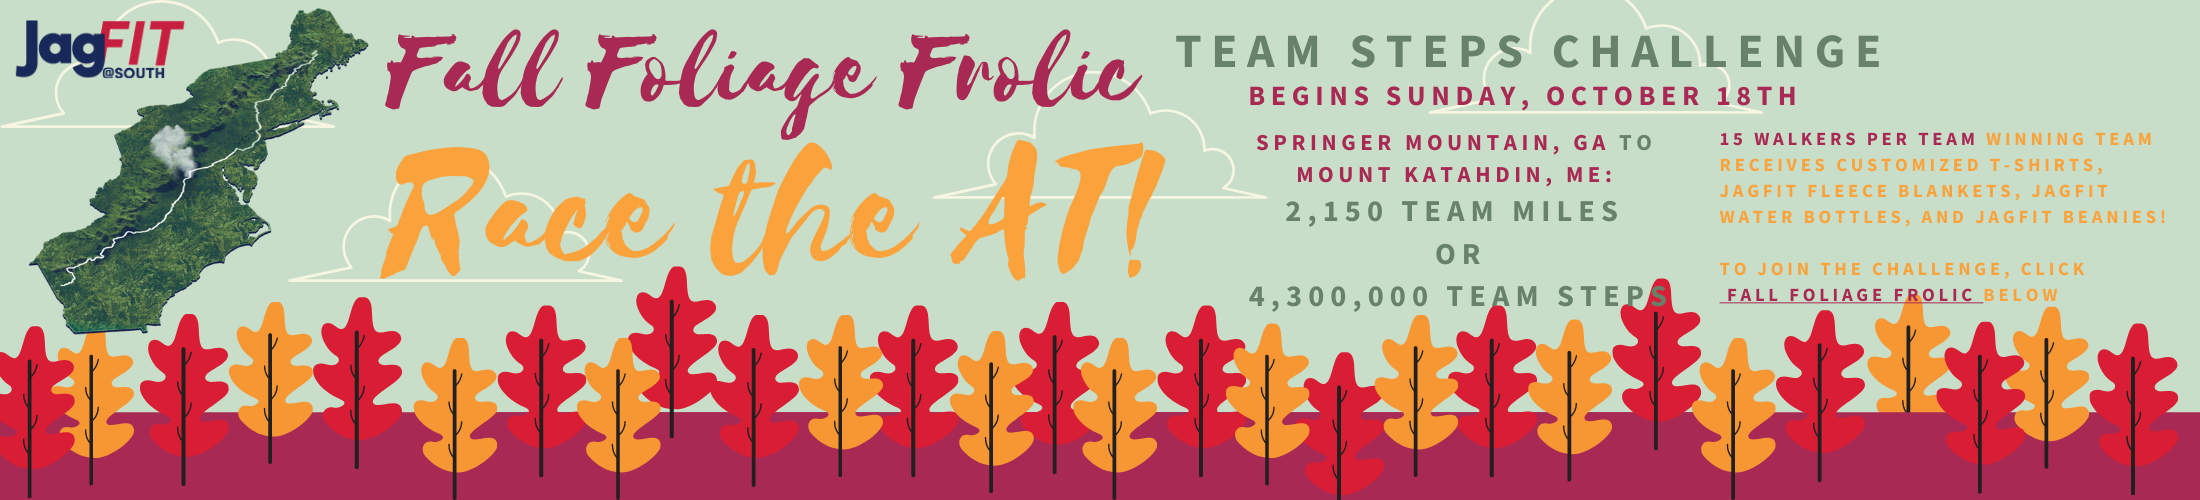 Fall Foliage Frolic Begins October 18th